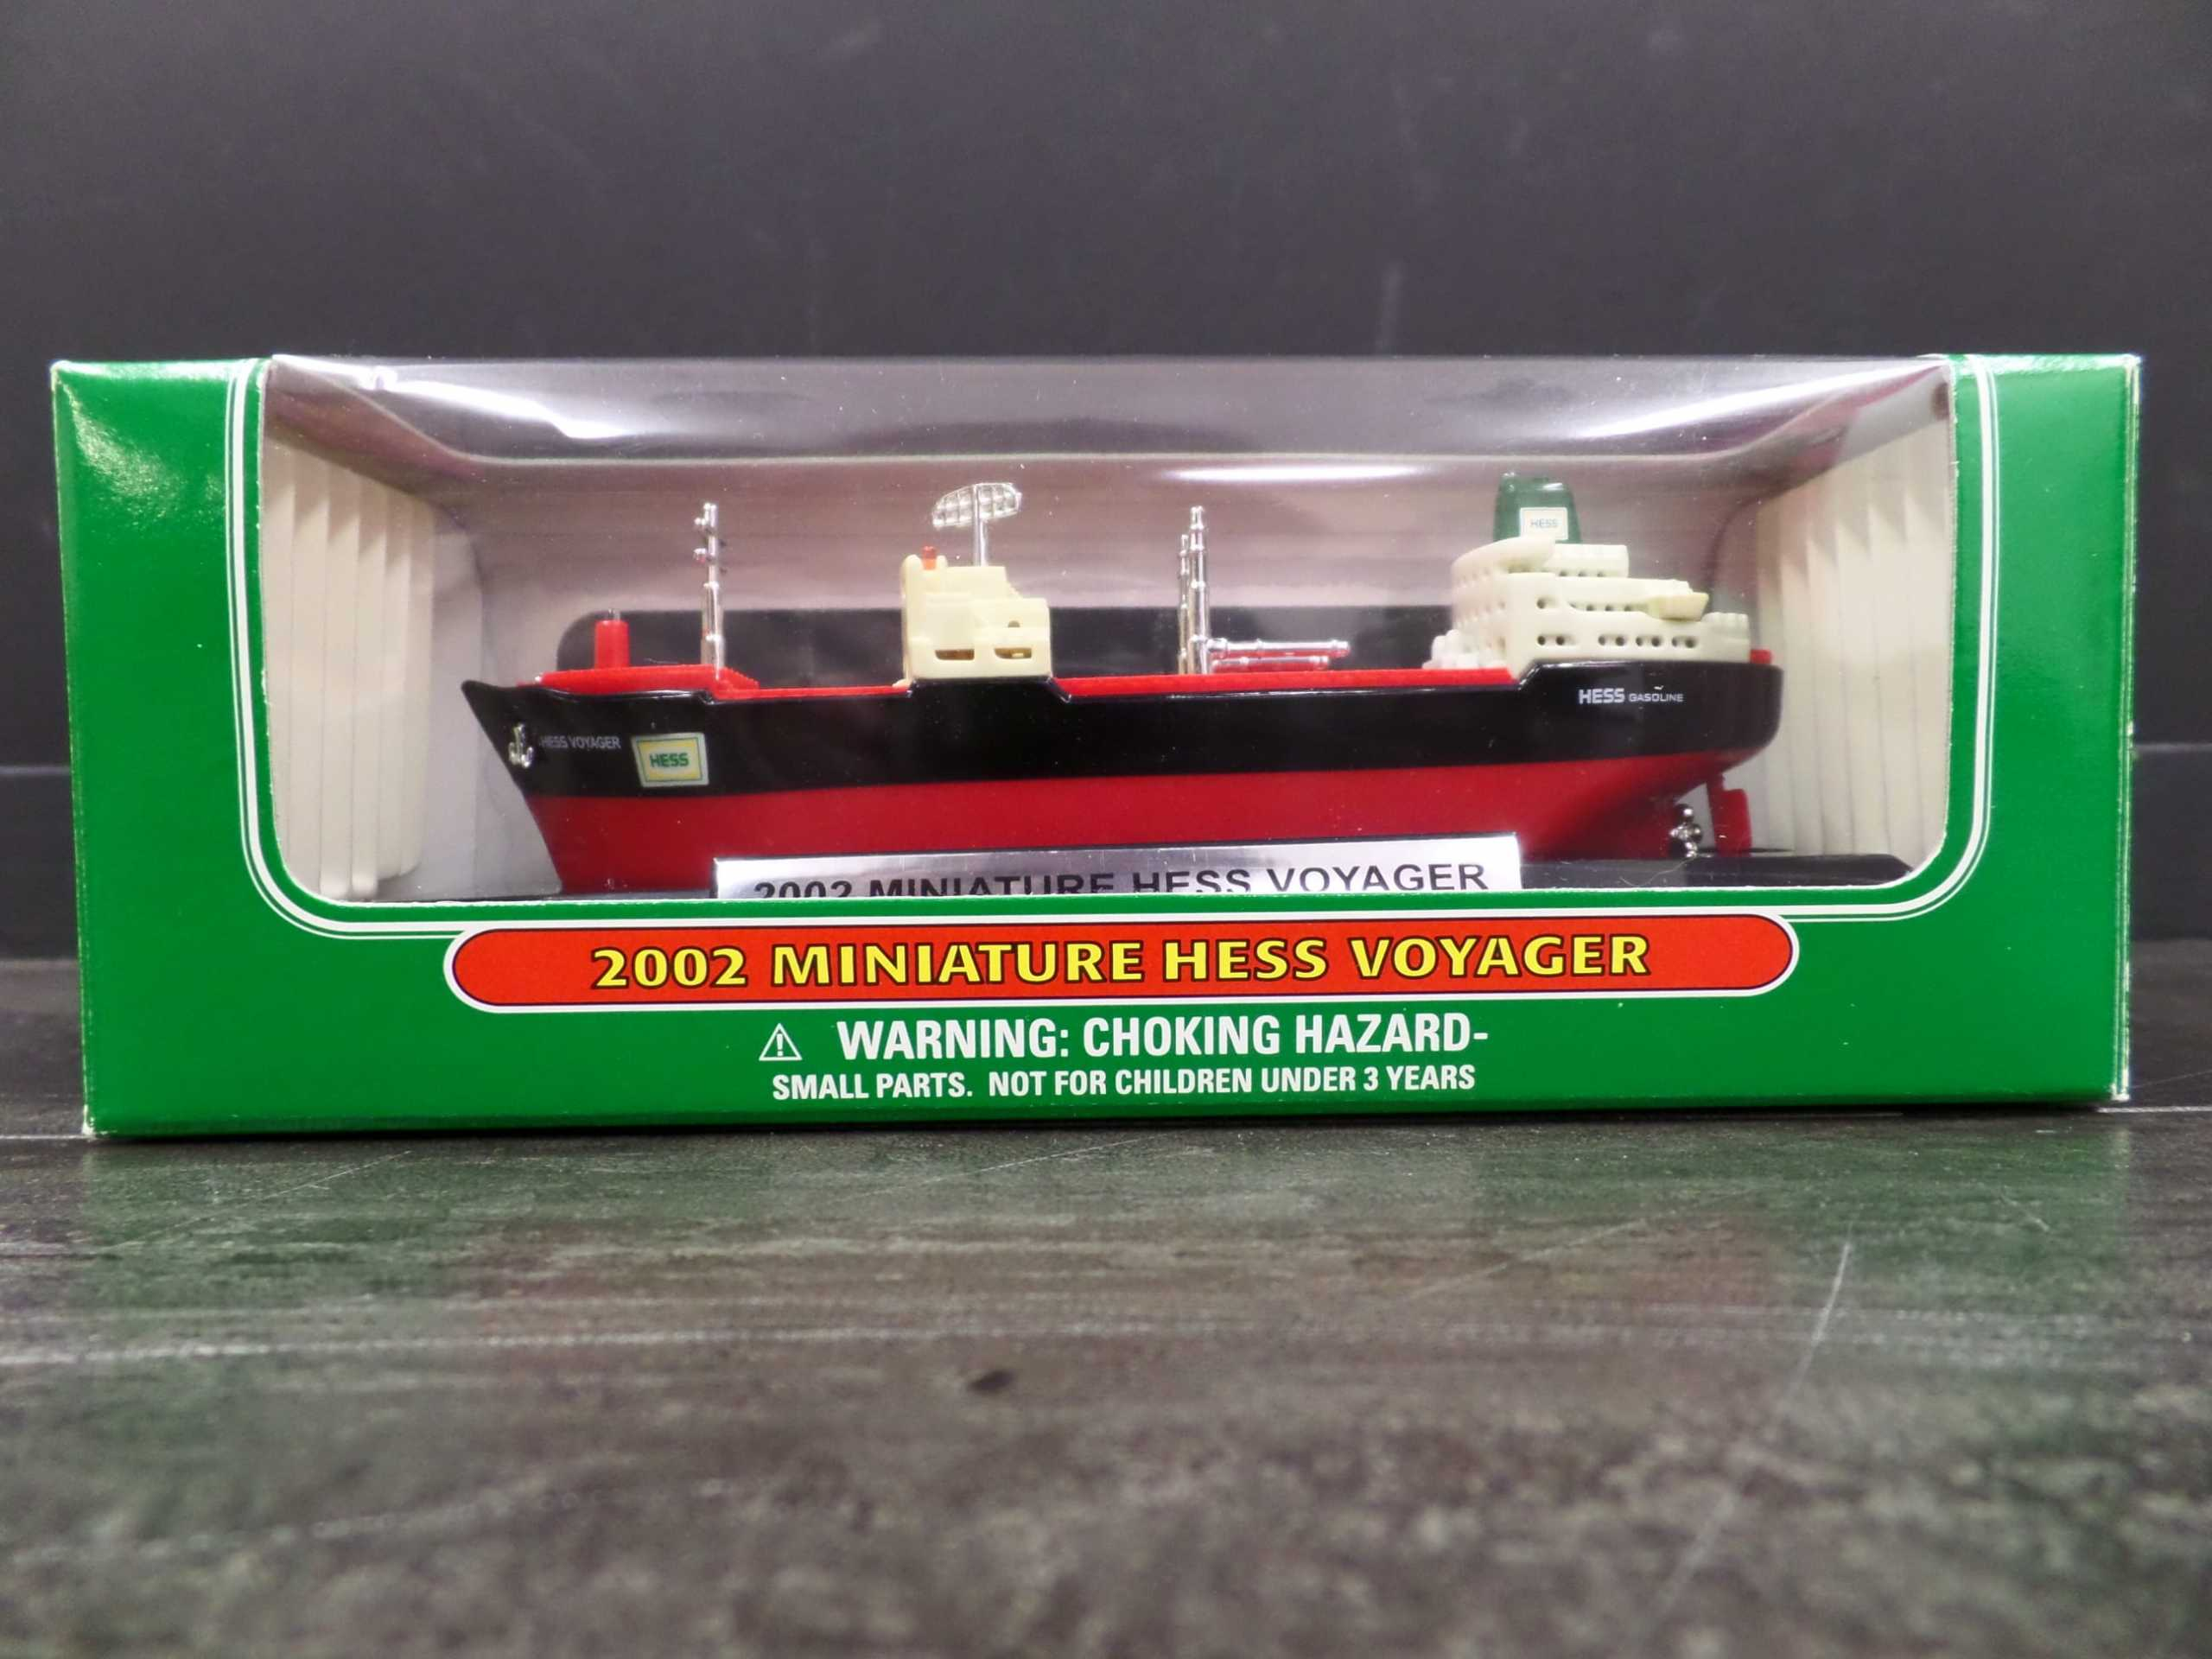 2002 MINI HESS VOYAGER SHIP <br/> Donated by: WPBS SUPPORTER <br/> Buy It Now: $15